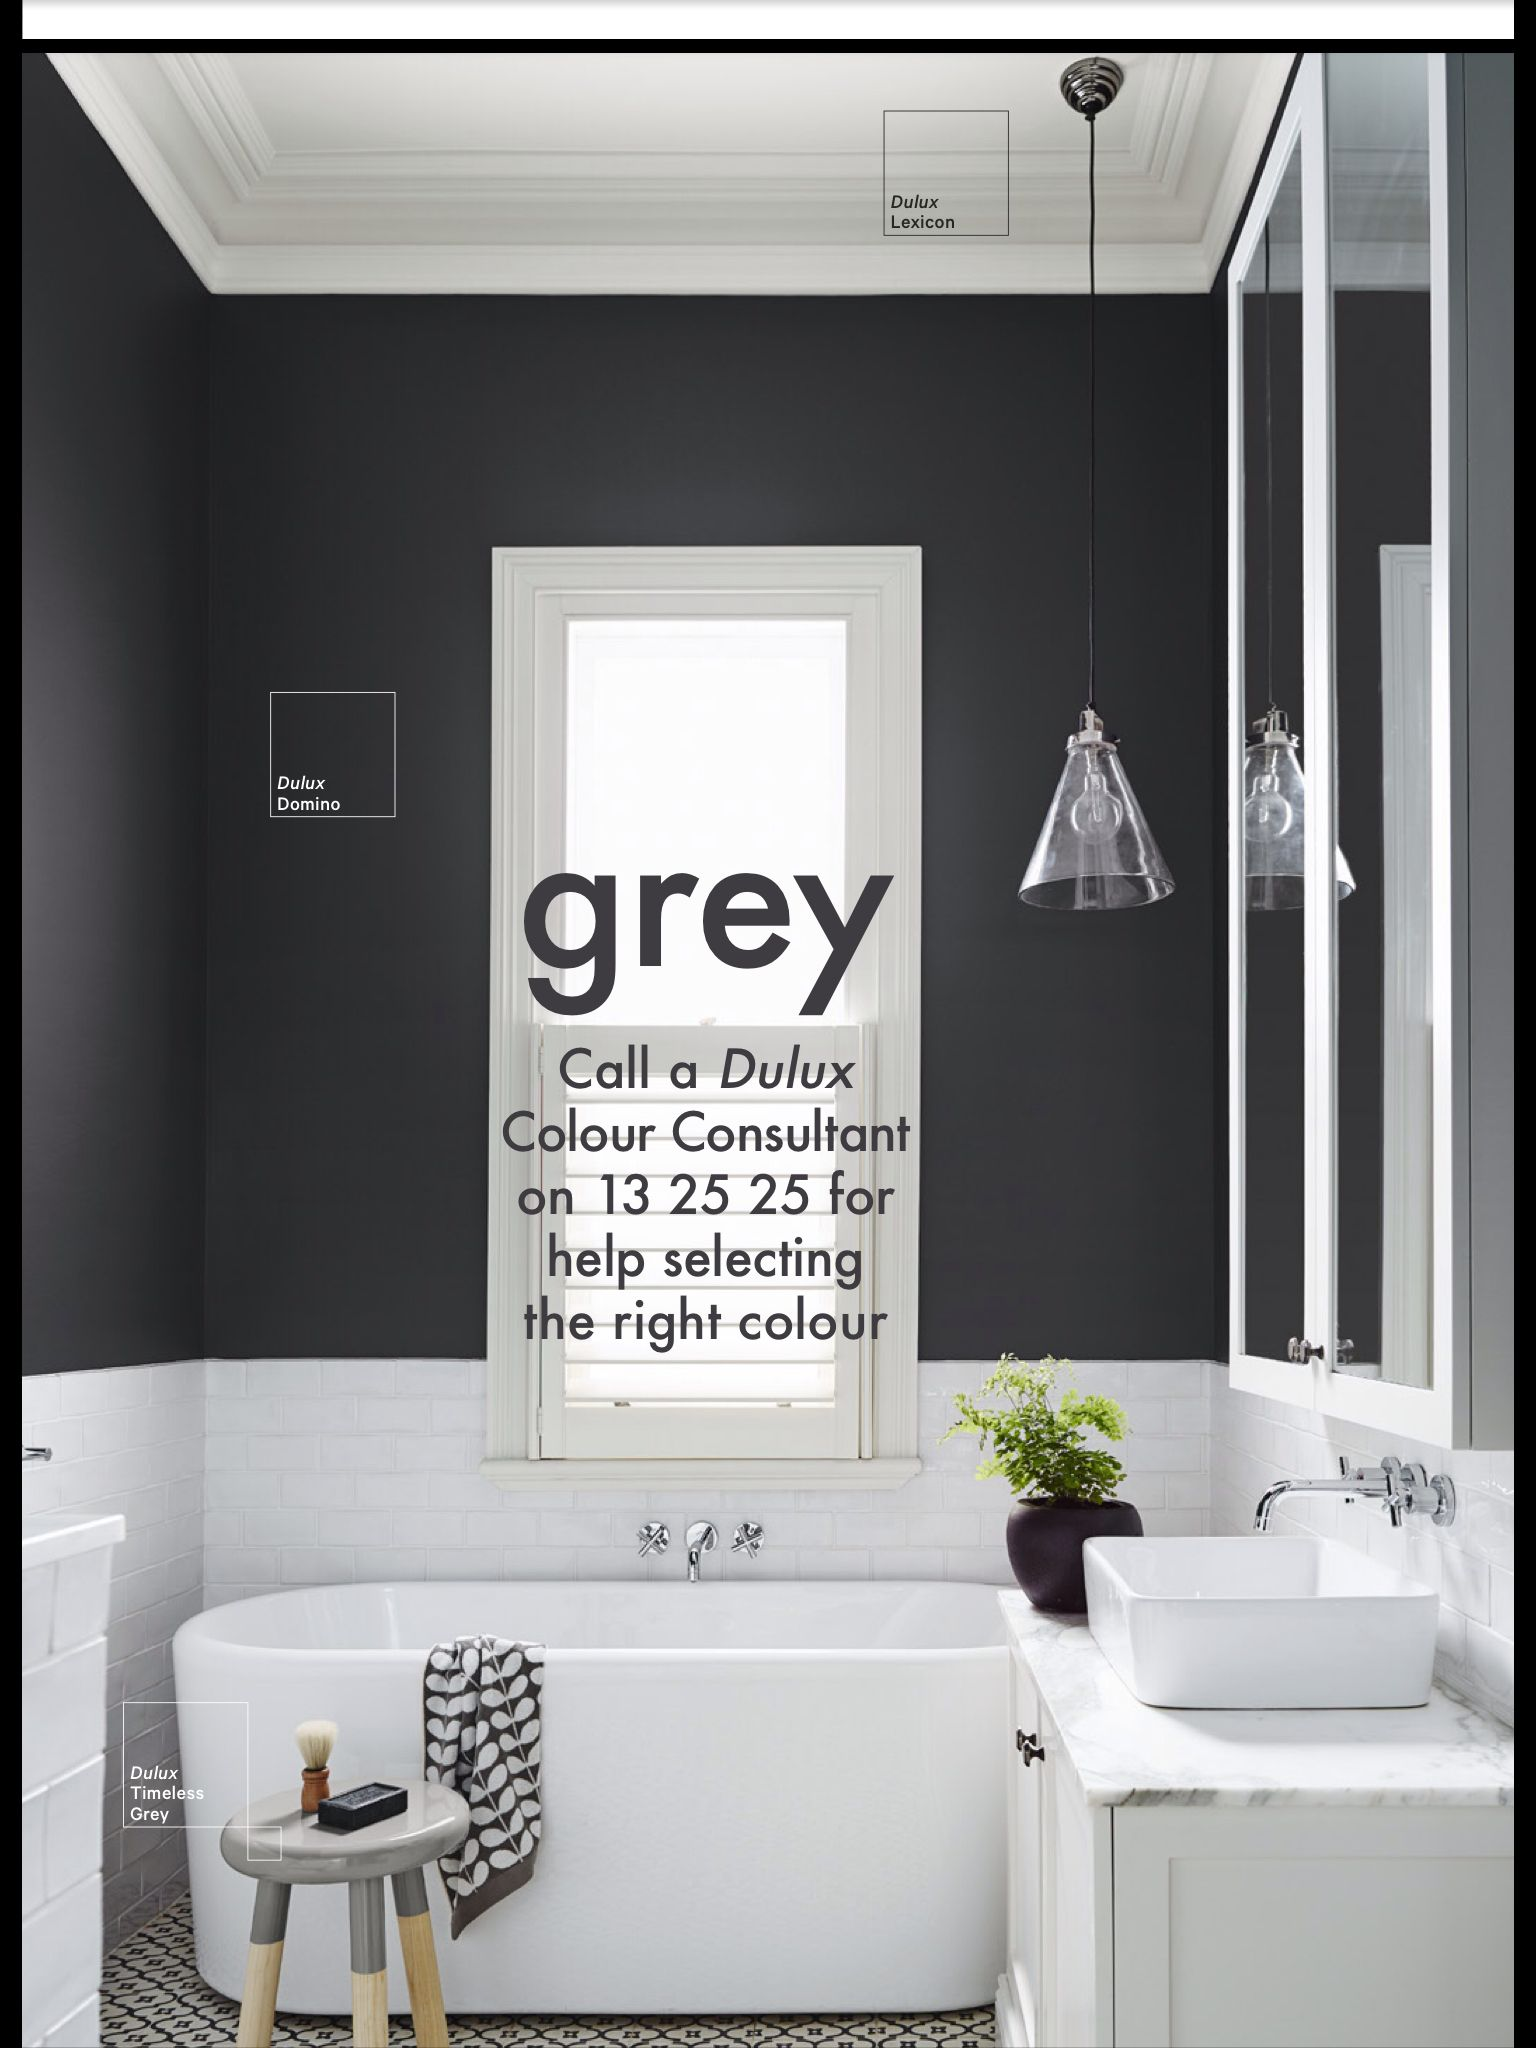 White Bathroom Paint Dulux grey paint dulux domino | bathroom | pinterest | grey, grey paint